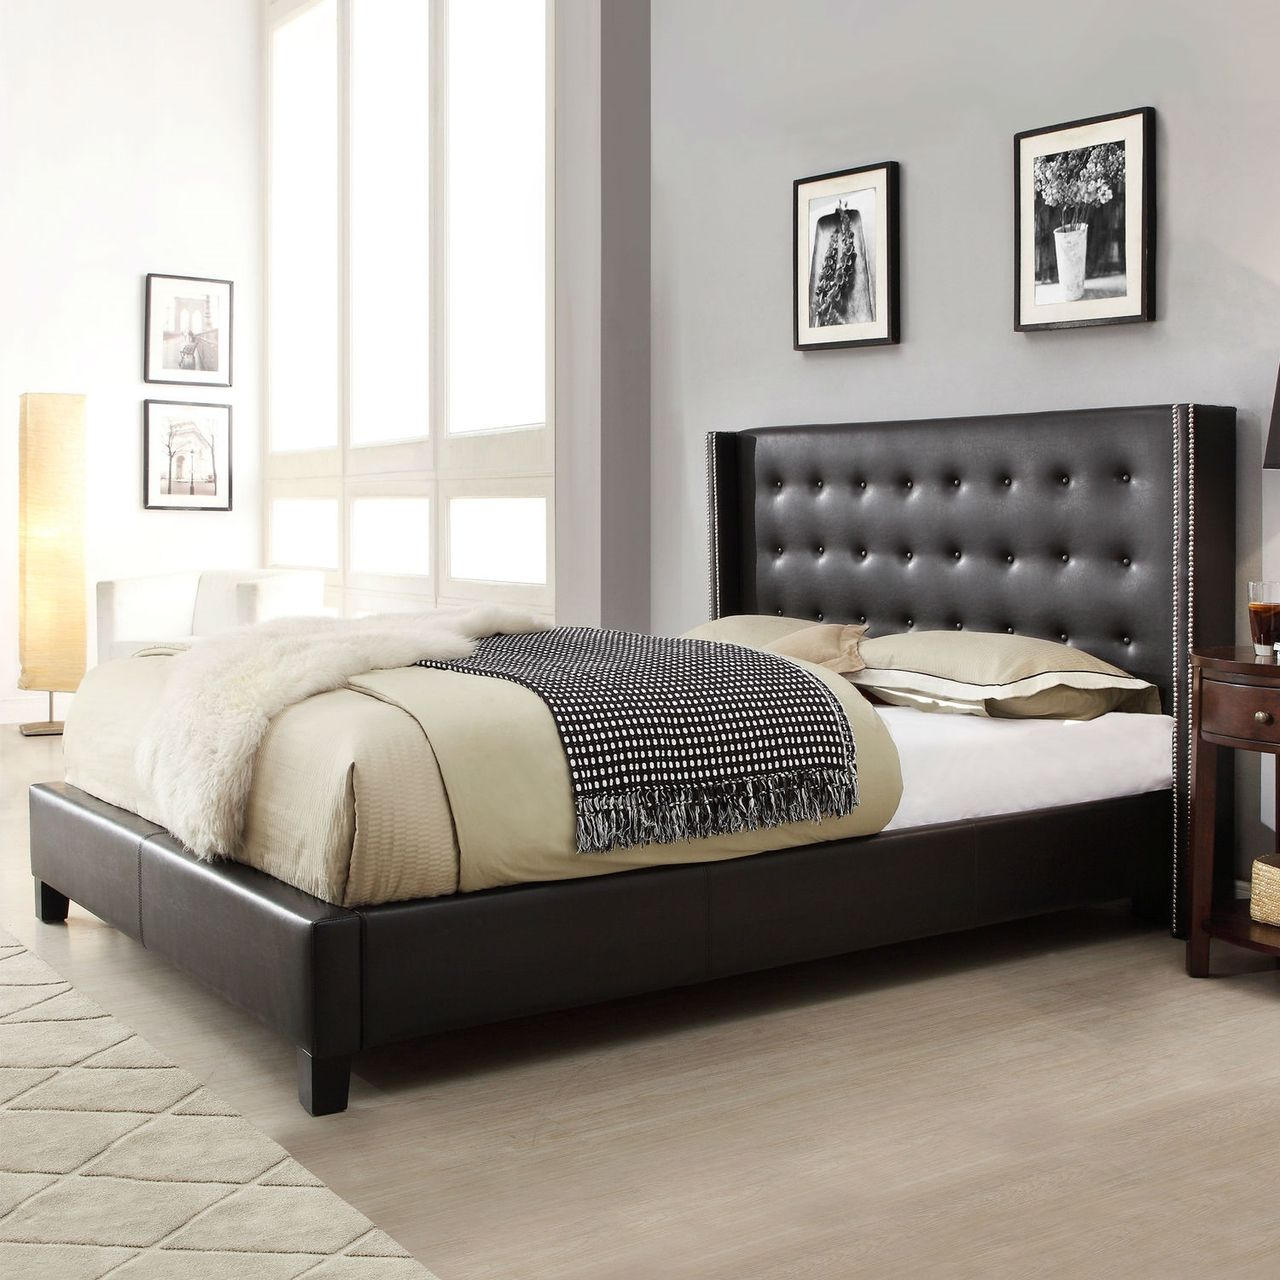 Best Queen Black Faux Leather Upholstered Bed With Wingback 400 x 300